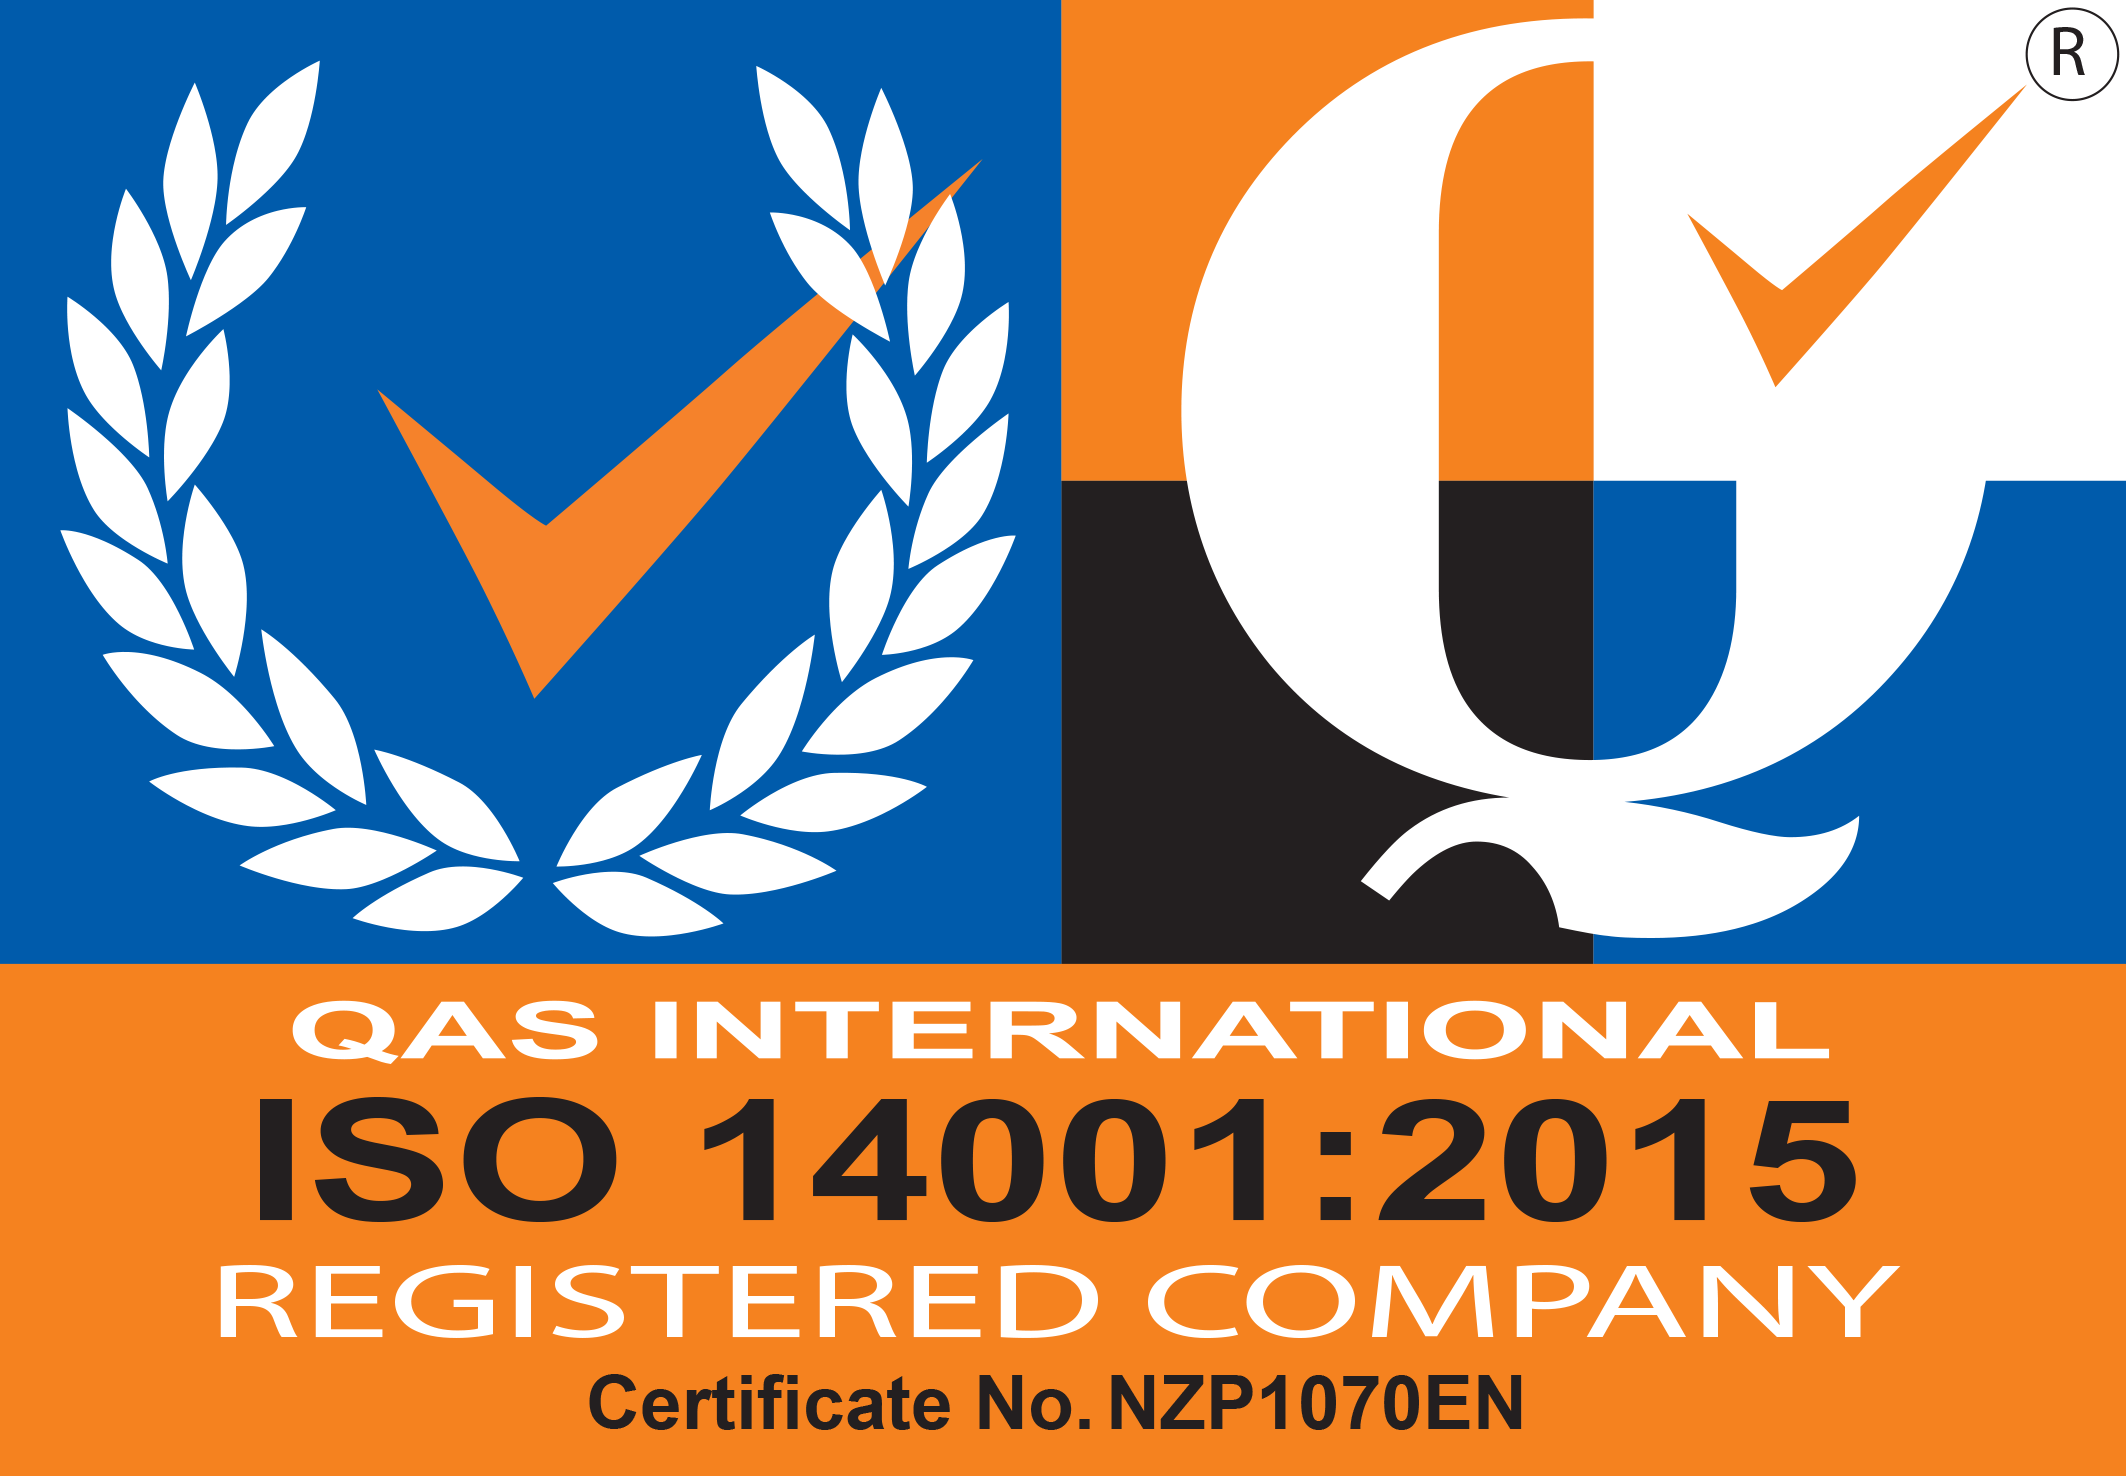 Atrax Group ISO Certification ISO 14001:2015 EMS icon